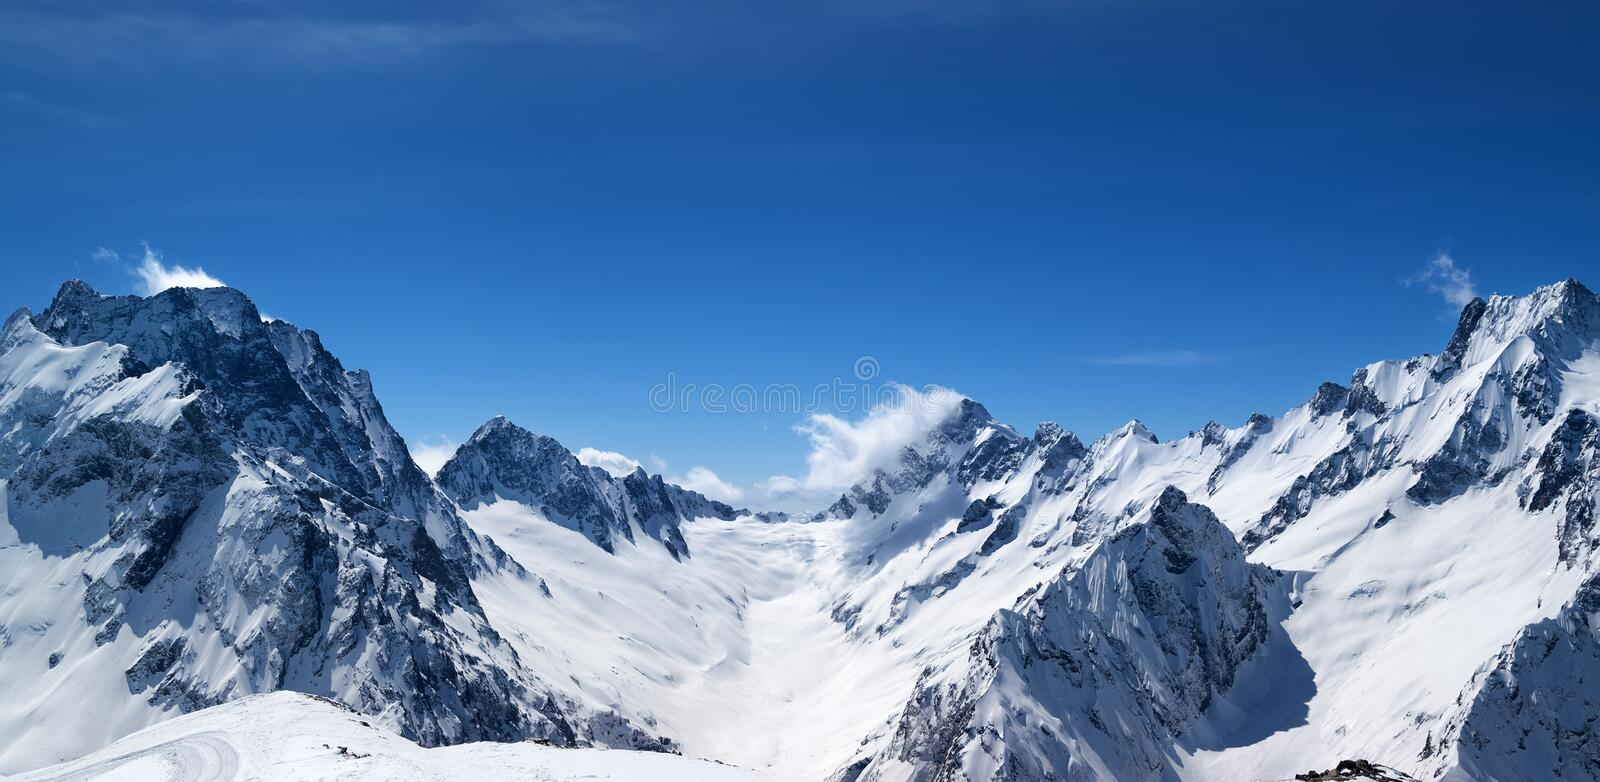 Panoramic view of snow covered mountain peaks. With mount Dombay-Ulgen and beautiful blue sky with clouds at sun windy day. Caucasus Mountains in winter, region stock photos